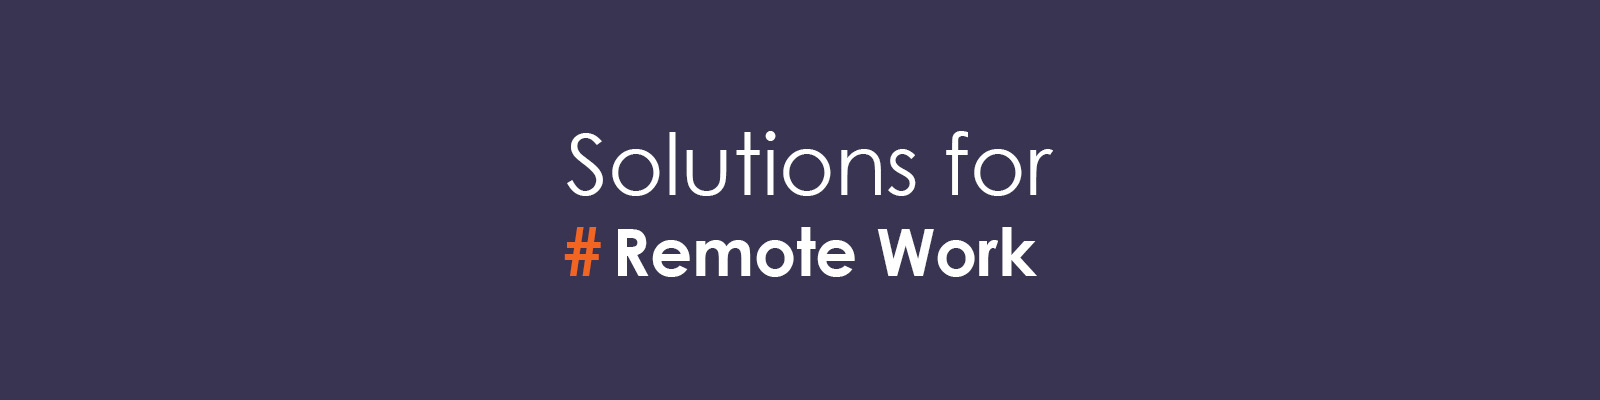 Solutions-for-remote-work